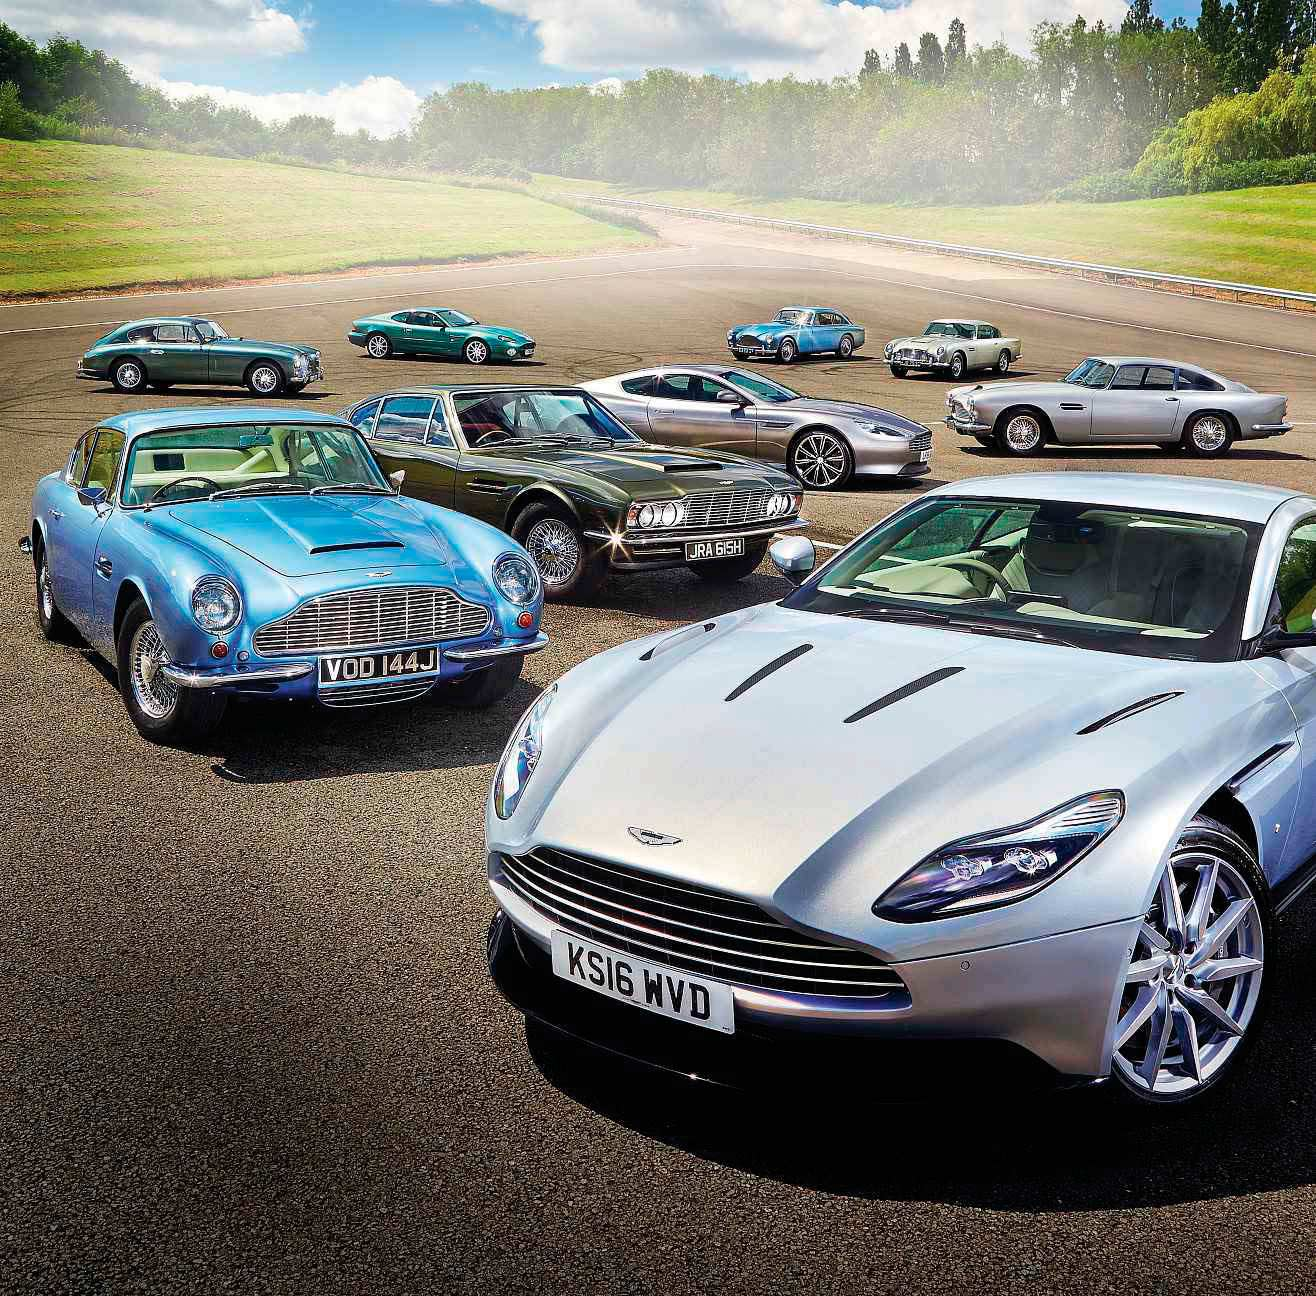 The Aston-Martin DB story and drive